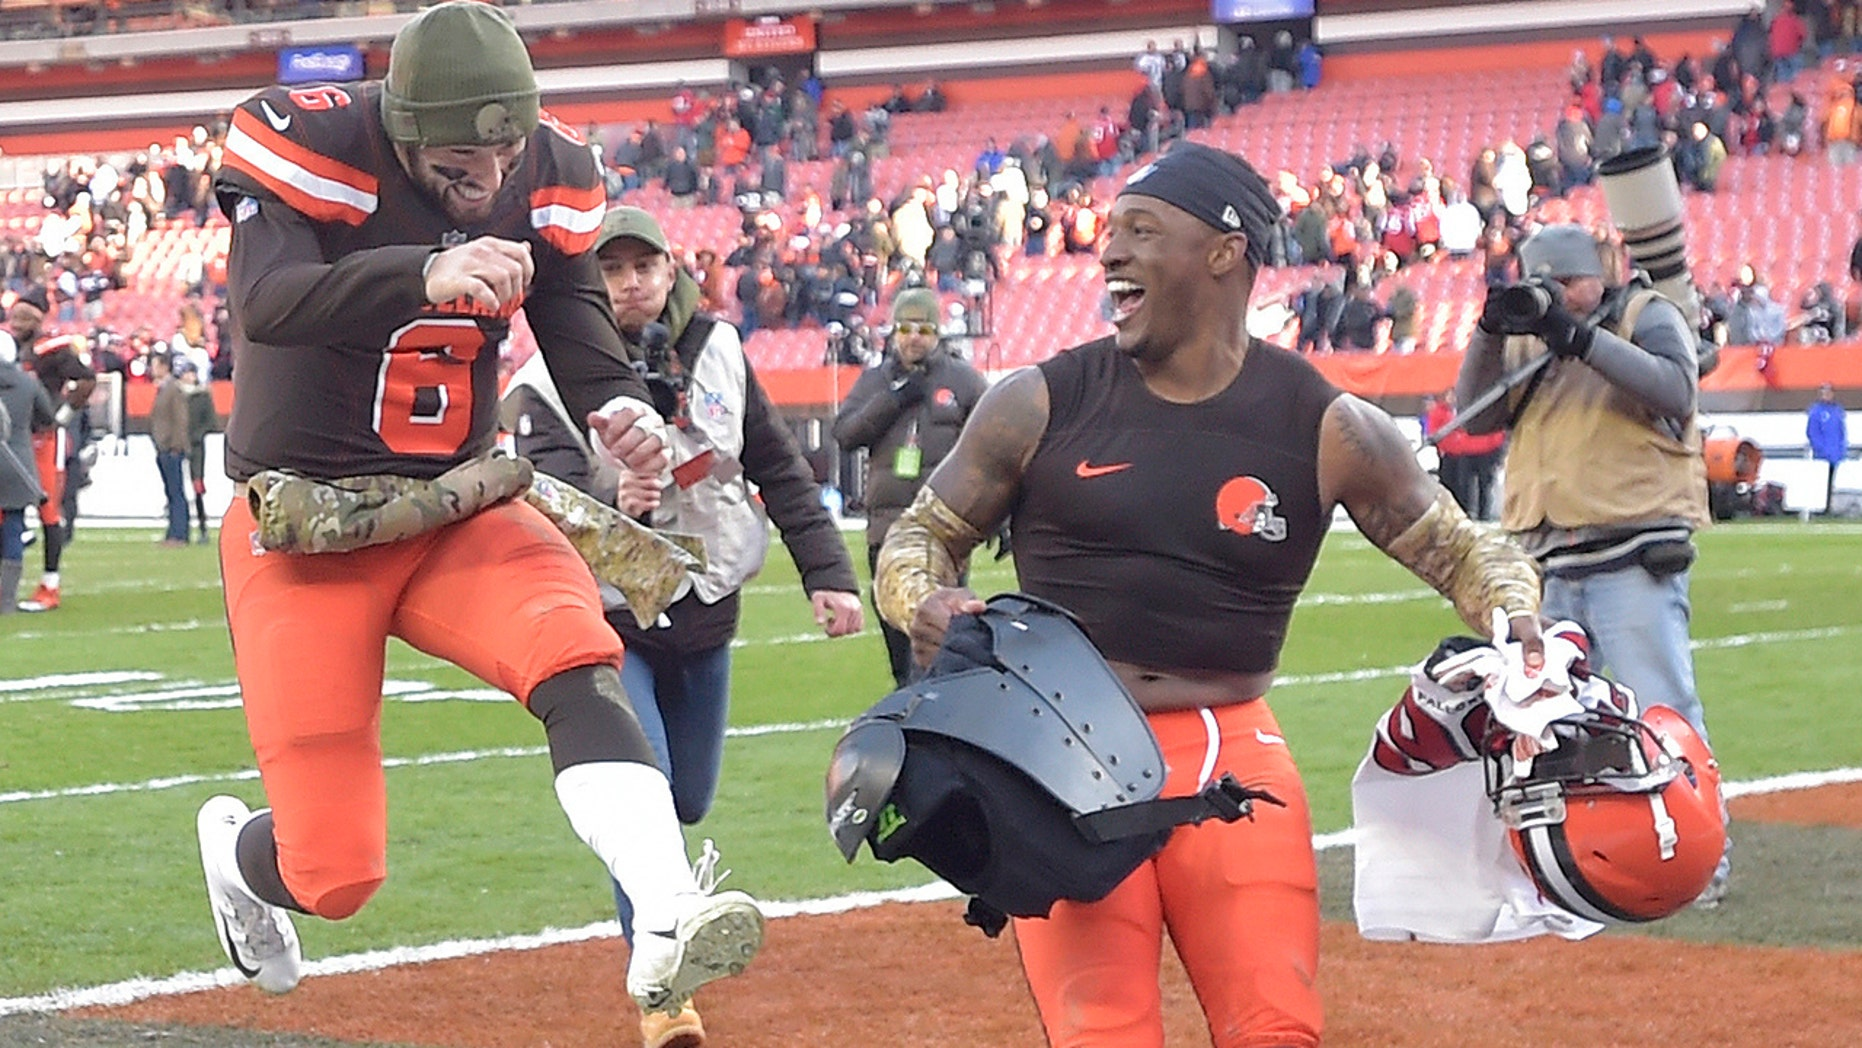 Baker Mayfield has career day for Cleveland Browns, highlights, Twitter reacts